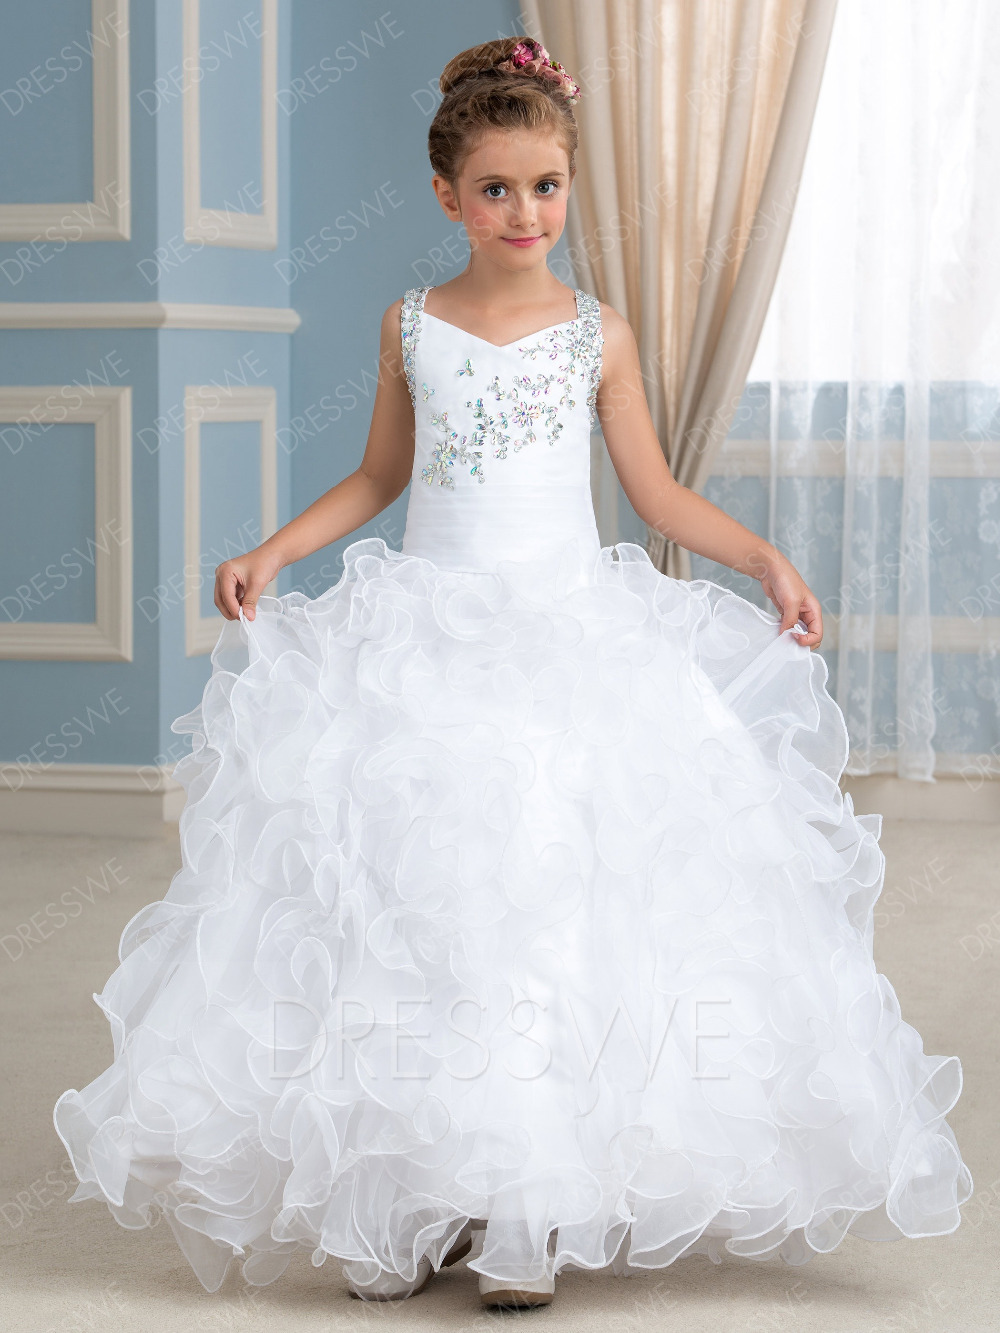 Flower Girl Dress Birthday Ball Gown Wedding Party Holiday